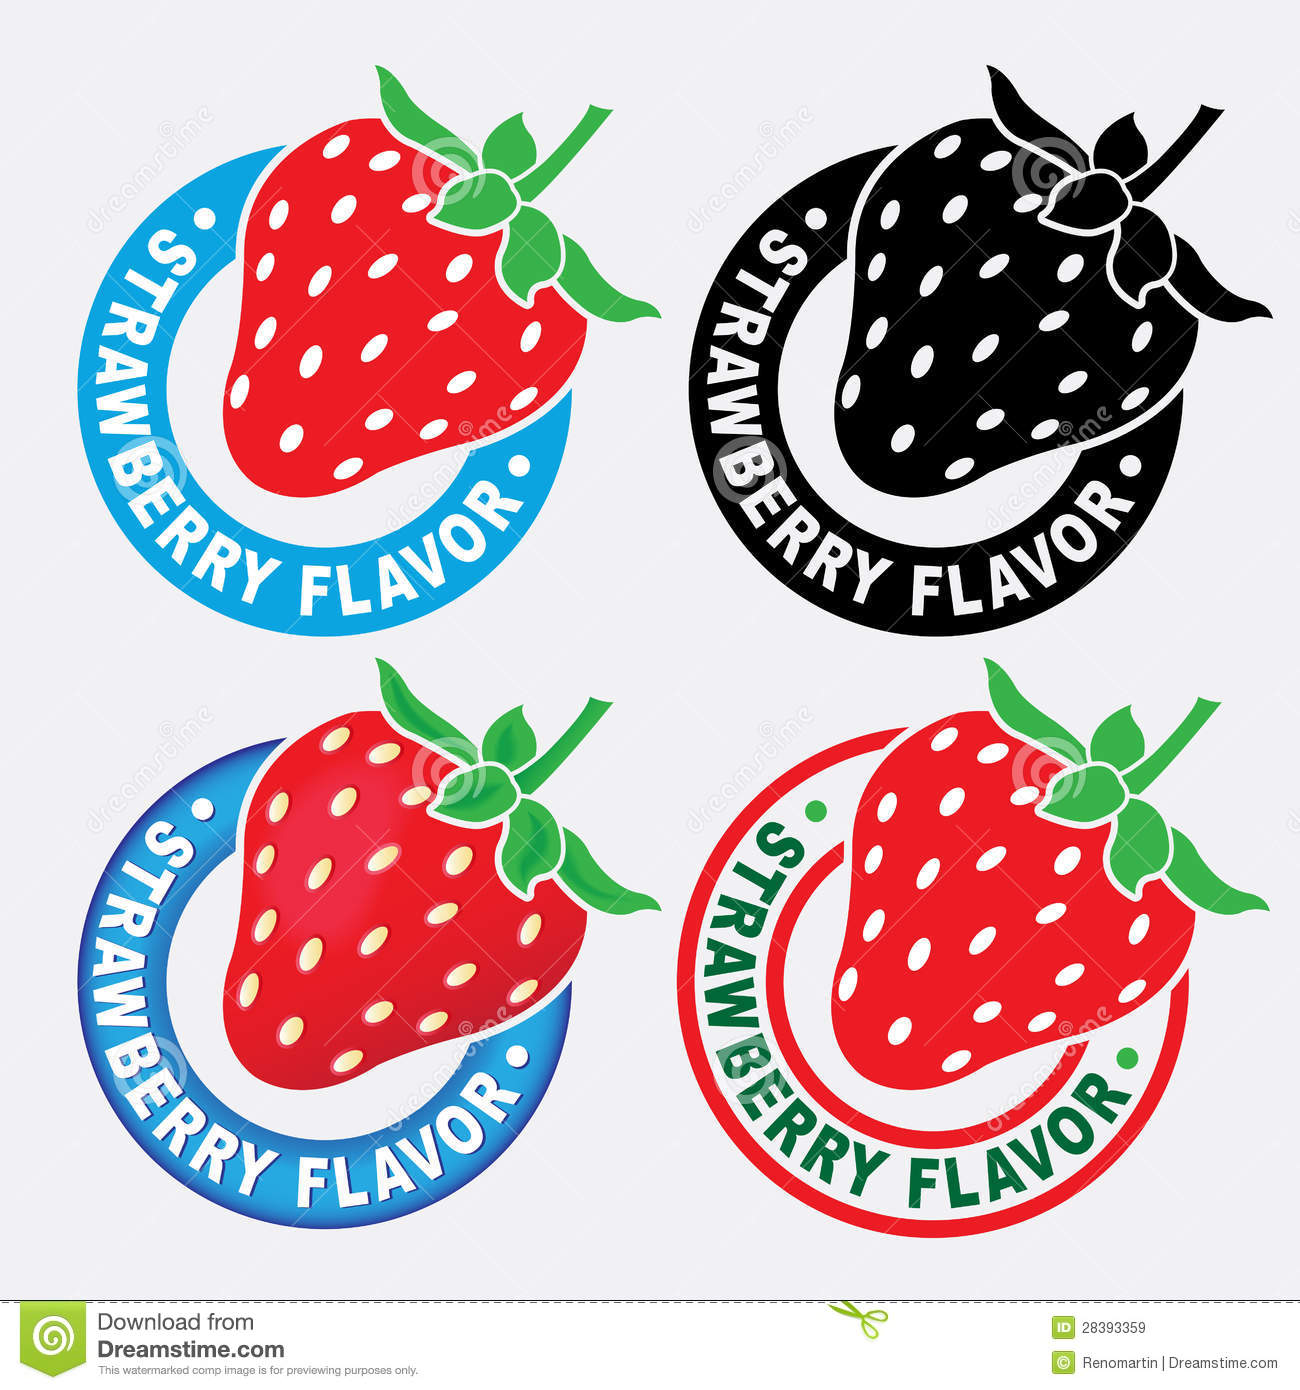 Strawberry Flavor Seal / Mark Royalty Free Stock Images.